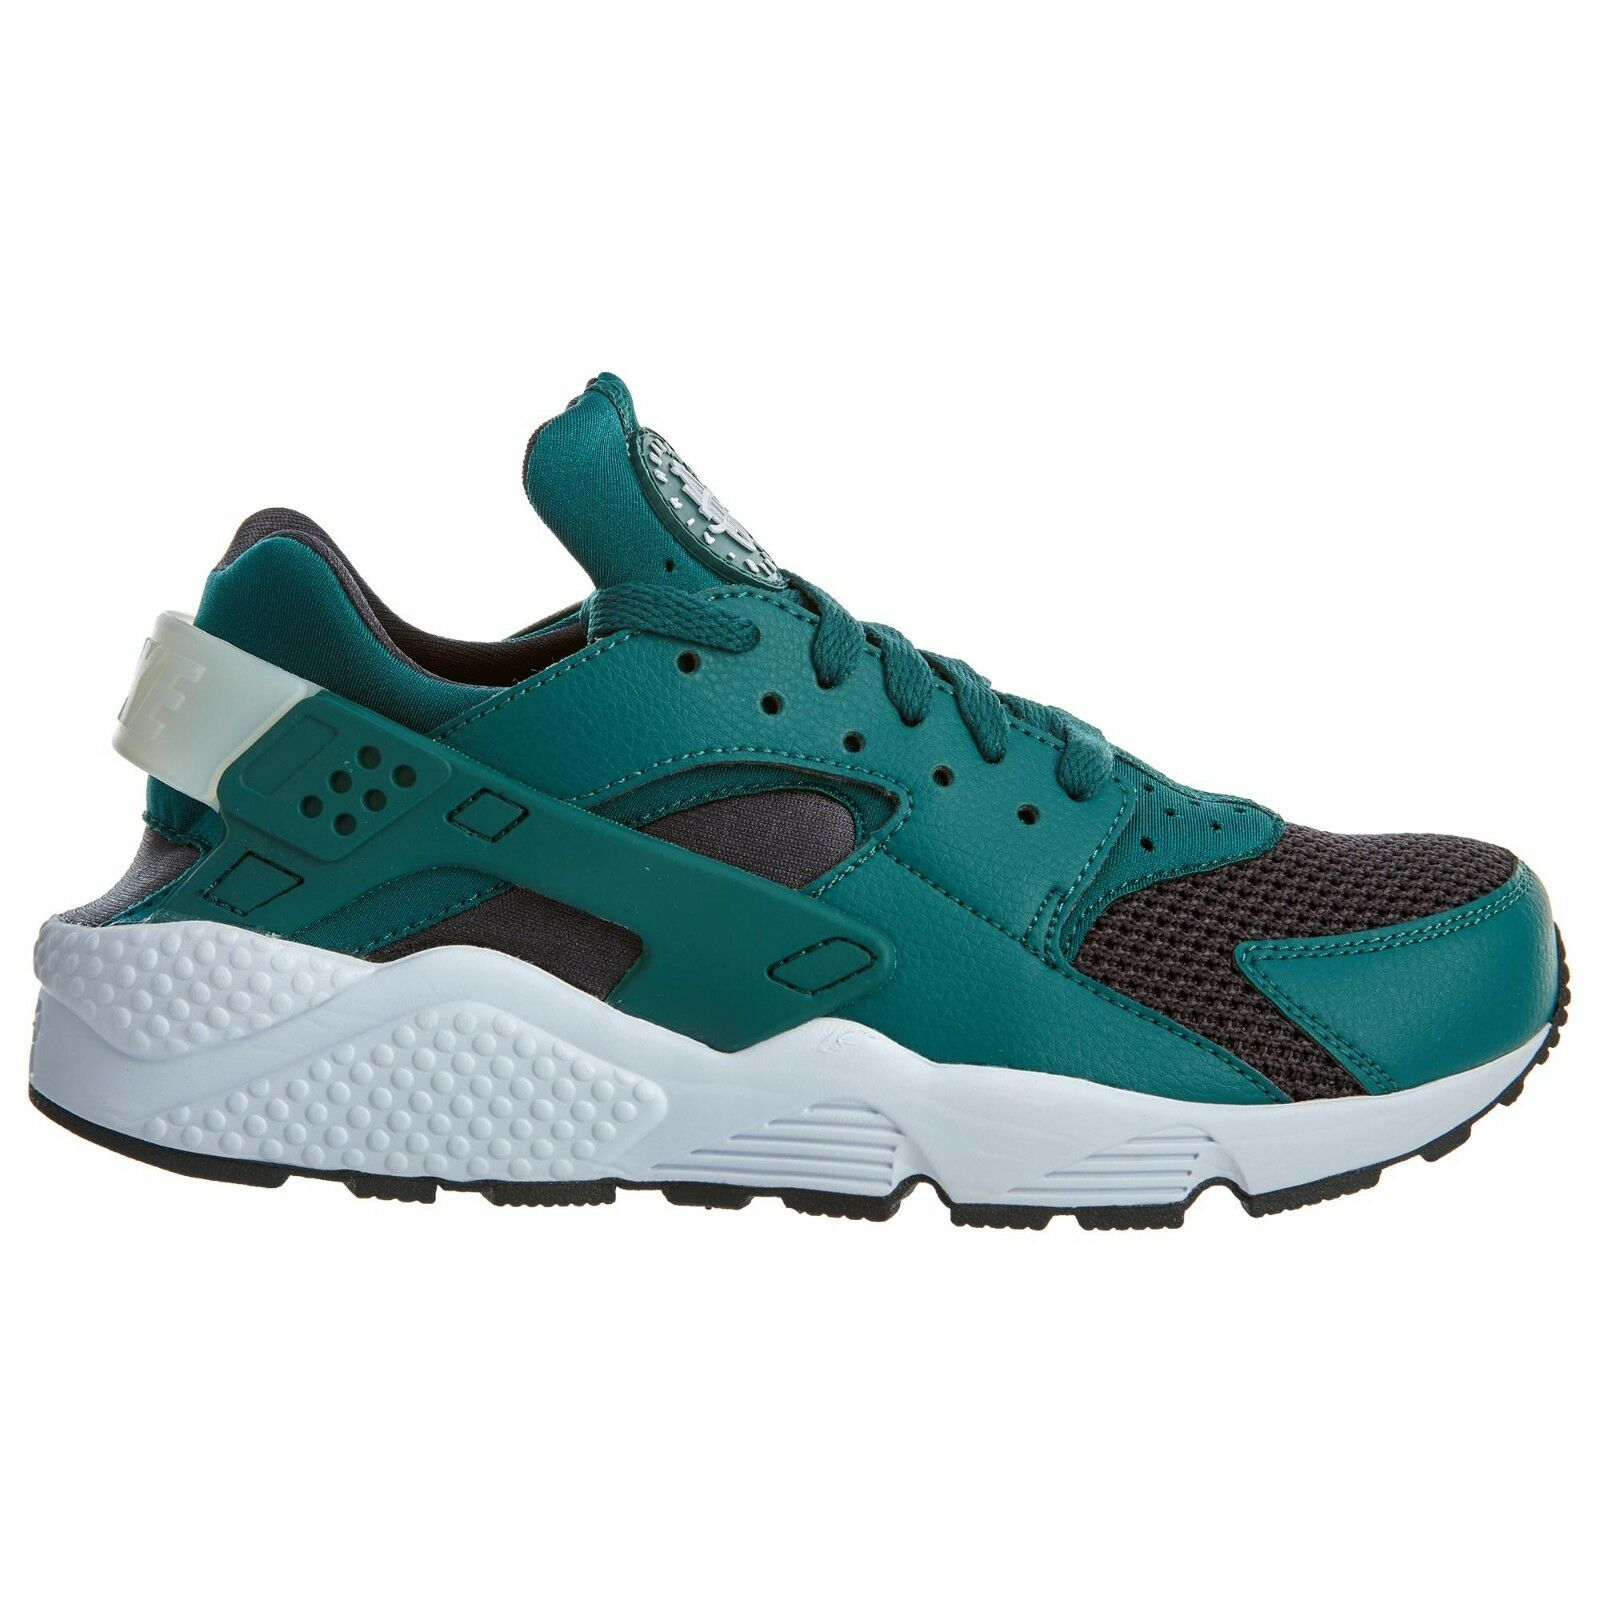 designer fashion 81783 7ba6a Nike Air Huarache Mens 318429-312 Rainforest Oil Grey Running shoes shoes  shoes Size 10.5